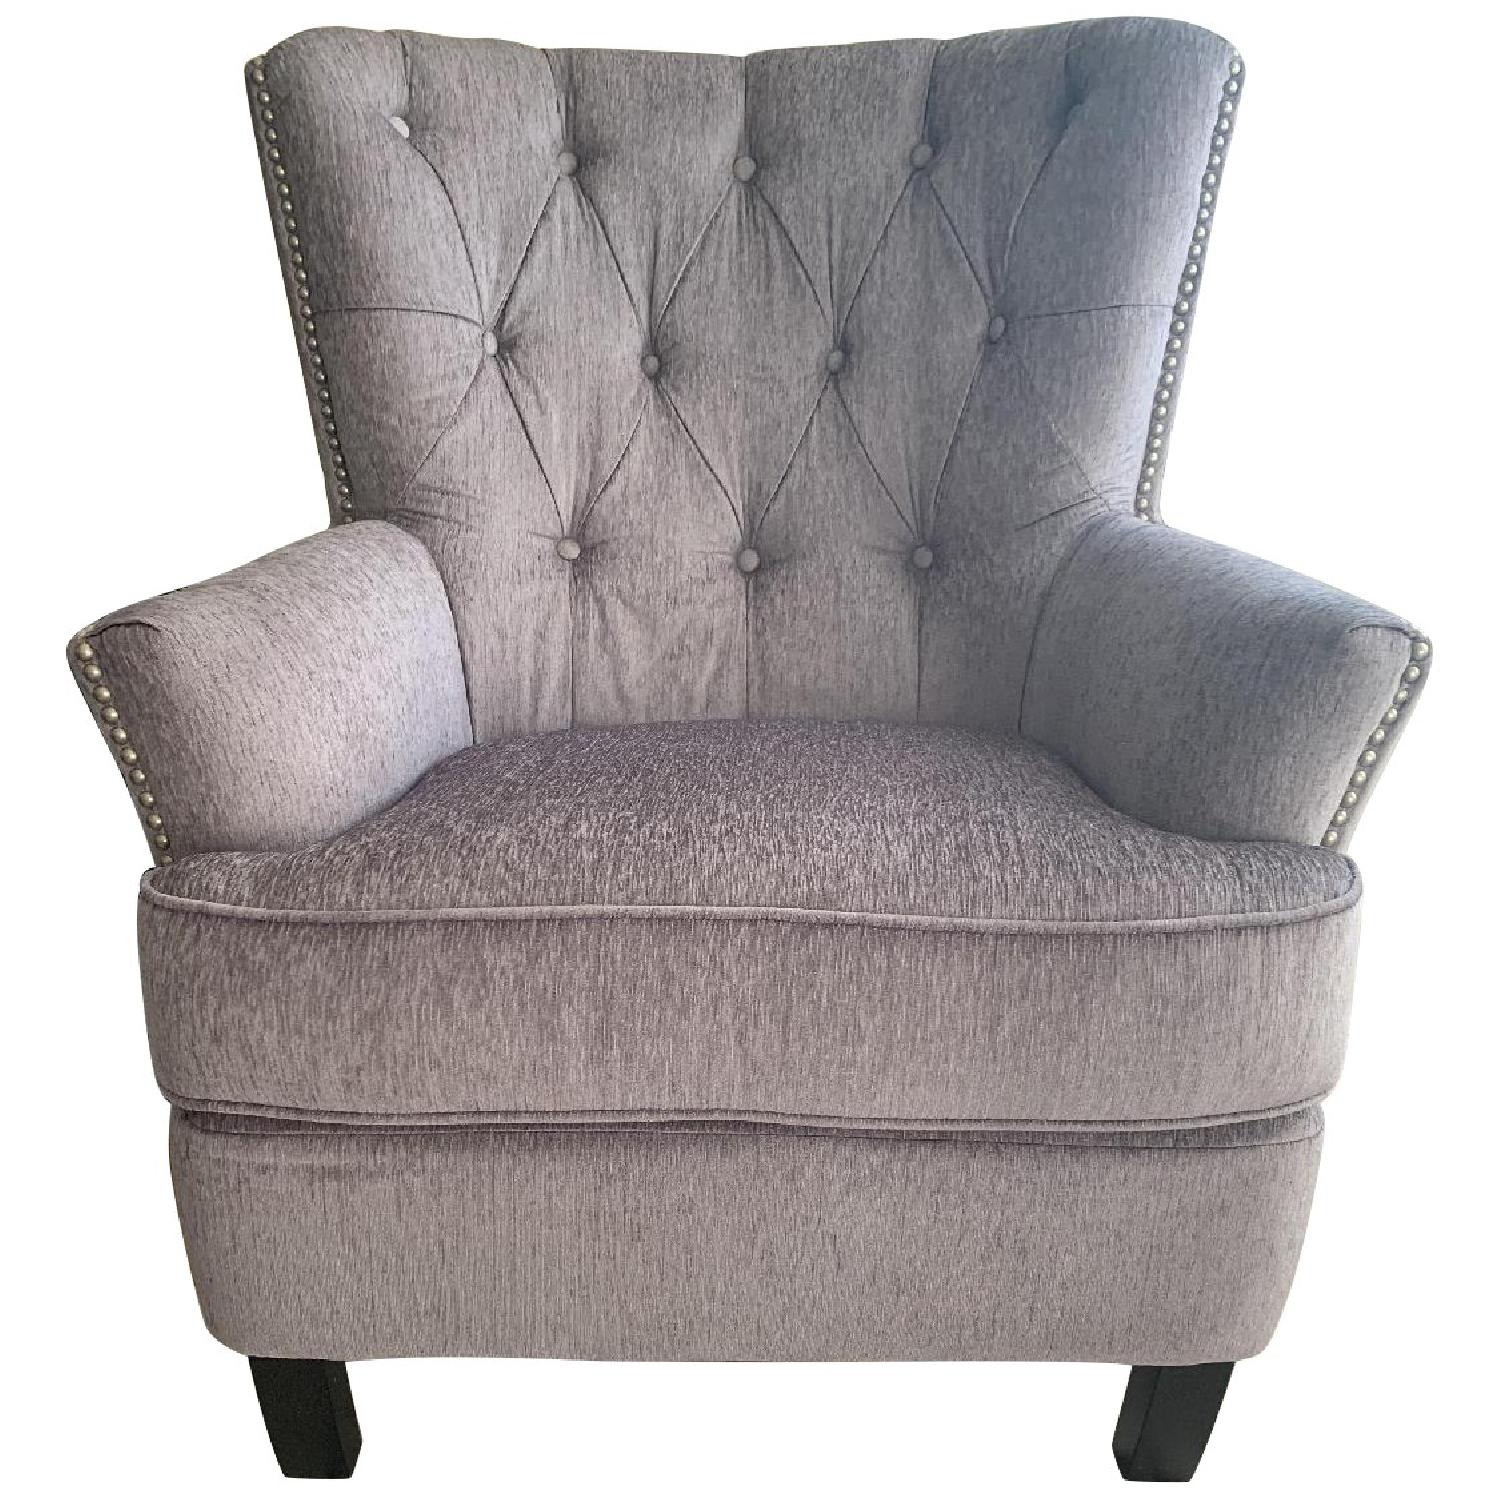 World Market Silver Accent Chair - image-0